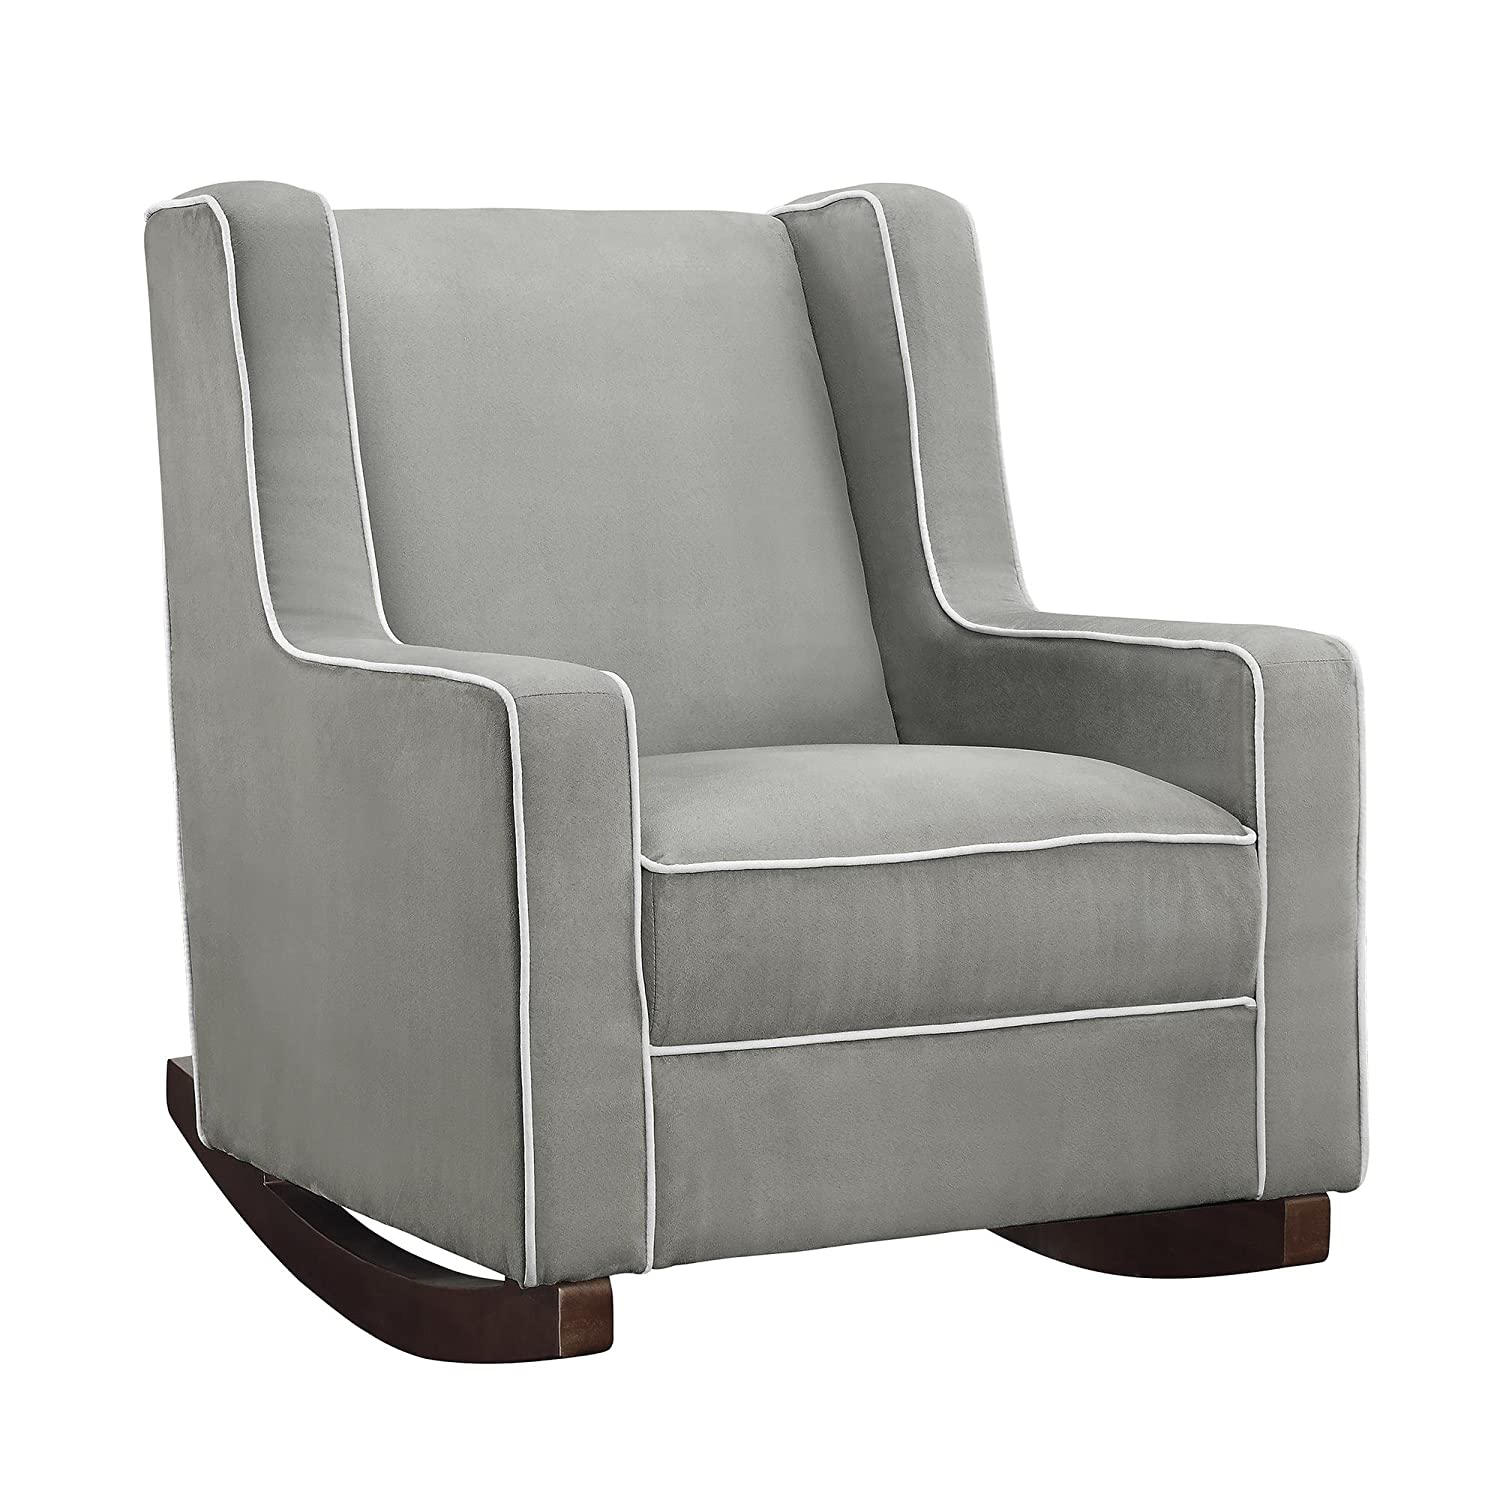 Baby rocking chairs - Baby Relax Abby Rocker Gray Color One Color